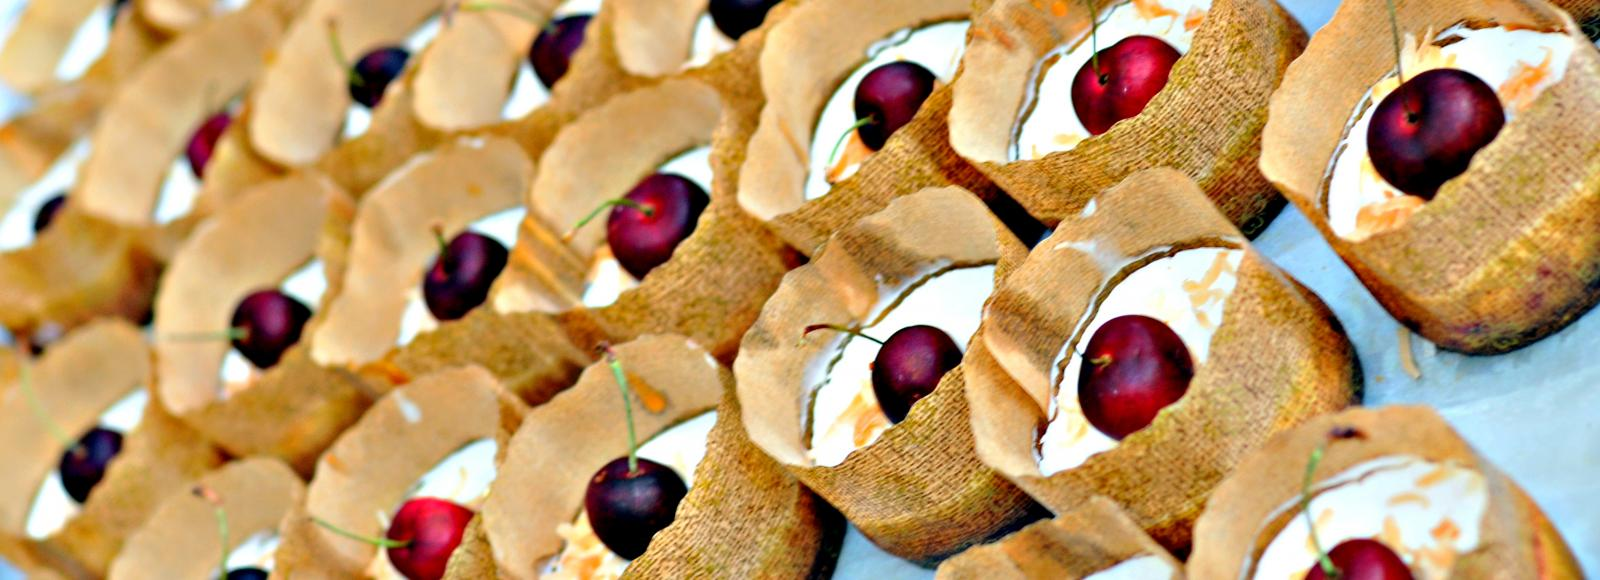 Cherry tarts wait to be served to guests at an event